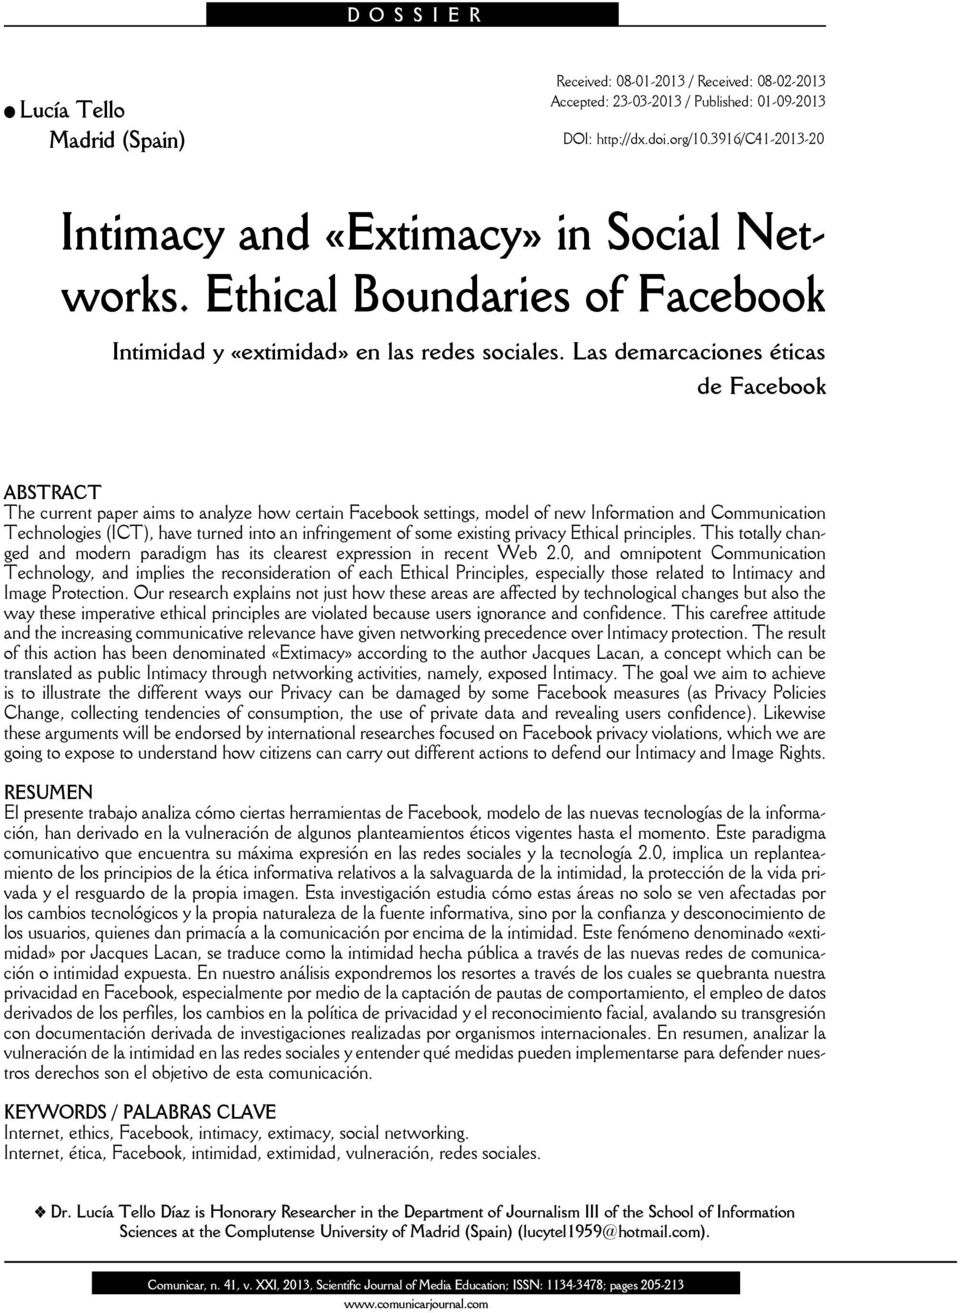 Las demarcaciones éticas de Facebook ABSTRACT The current paper aims to analyze how certain Facebook settings, model of new Information and Communication Technologies (ICT), have turned into an